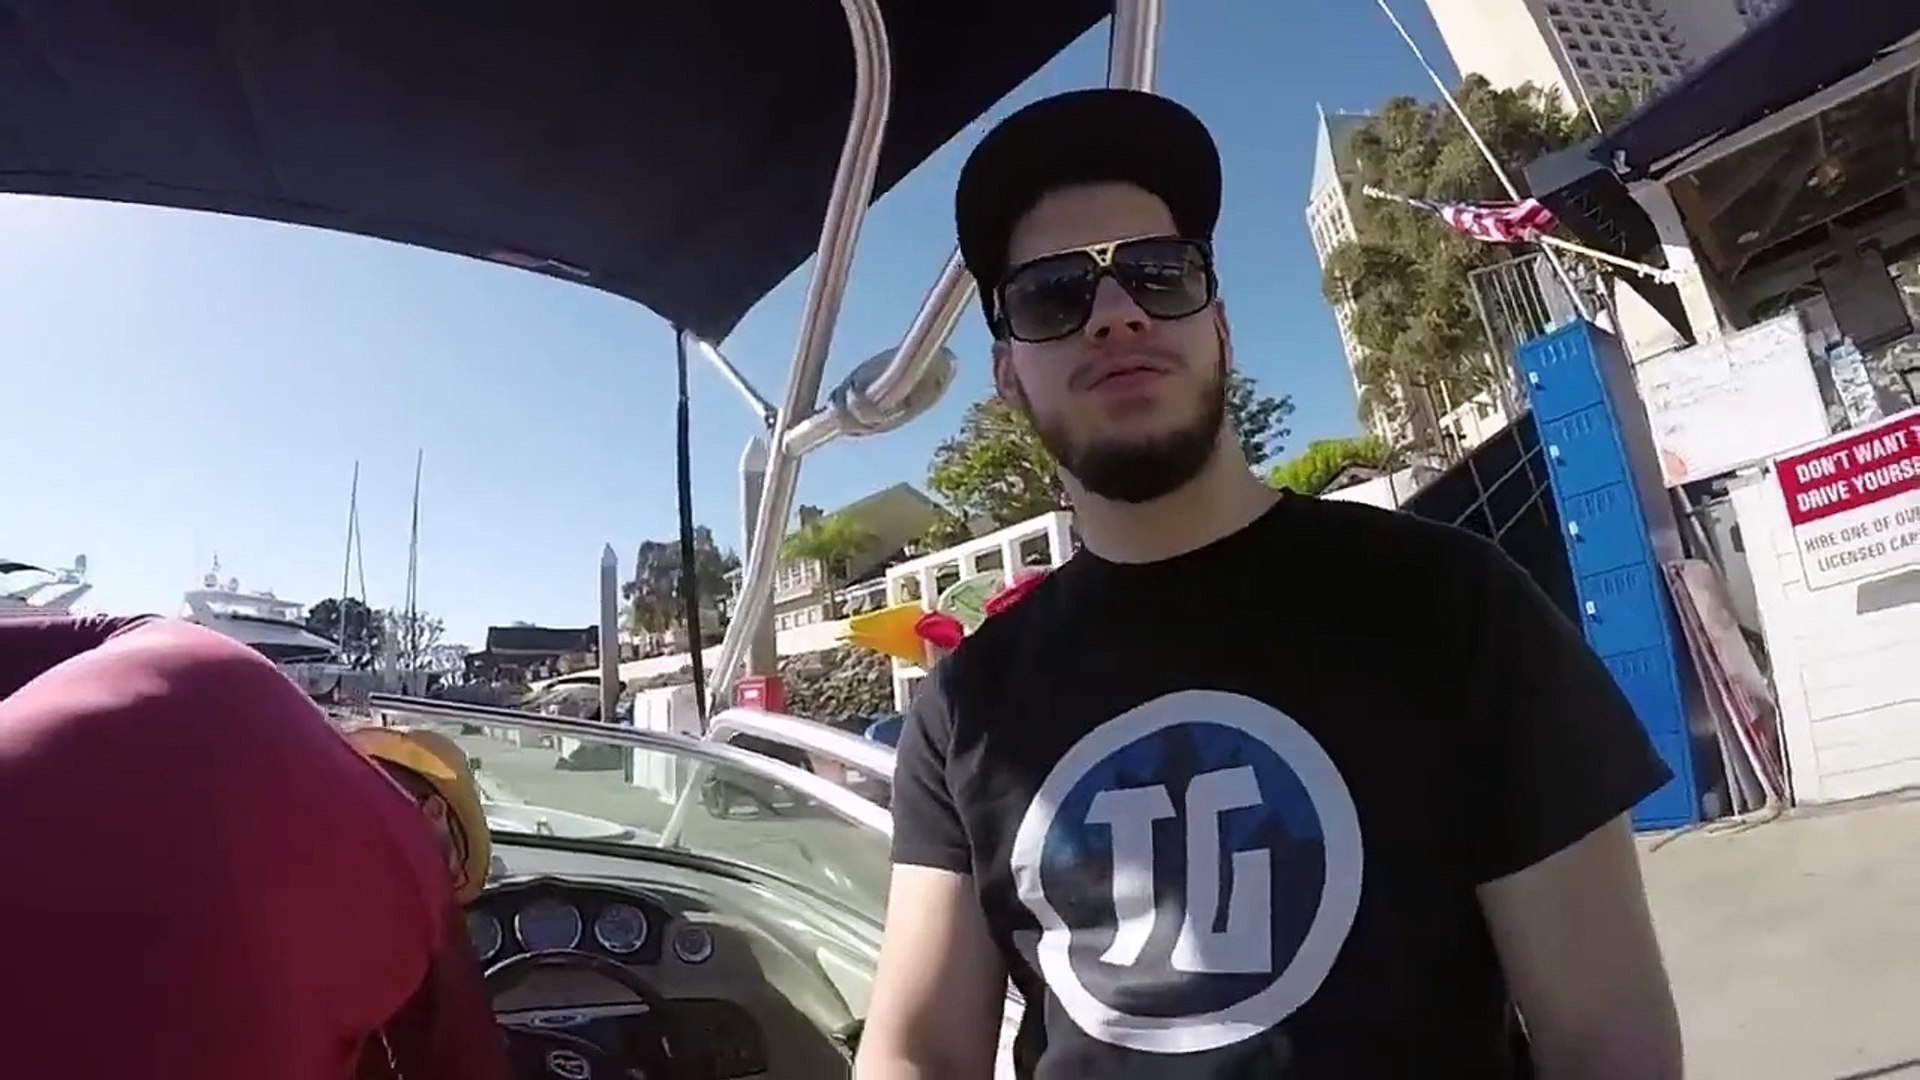 SAN DIEGO BOATING ADVENTURE! Real Life Vlogs with Typical Gamer! -TypicalGamer